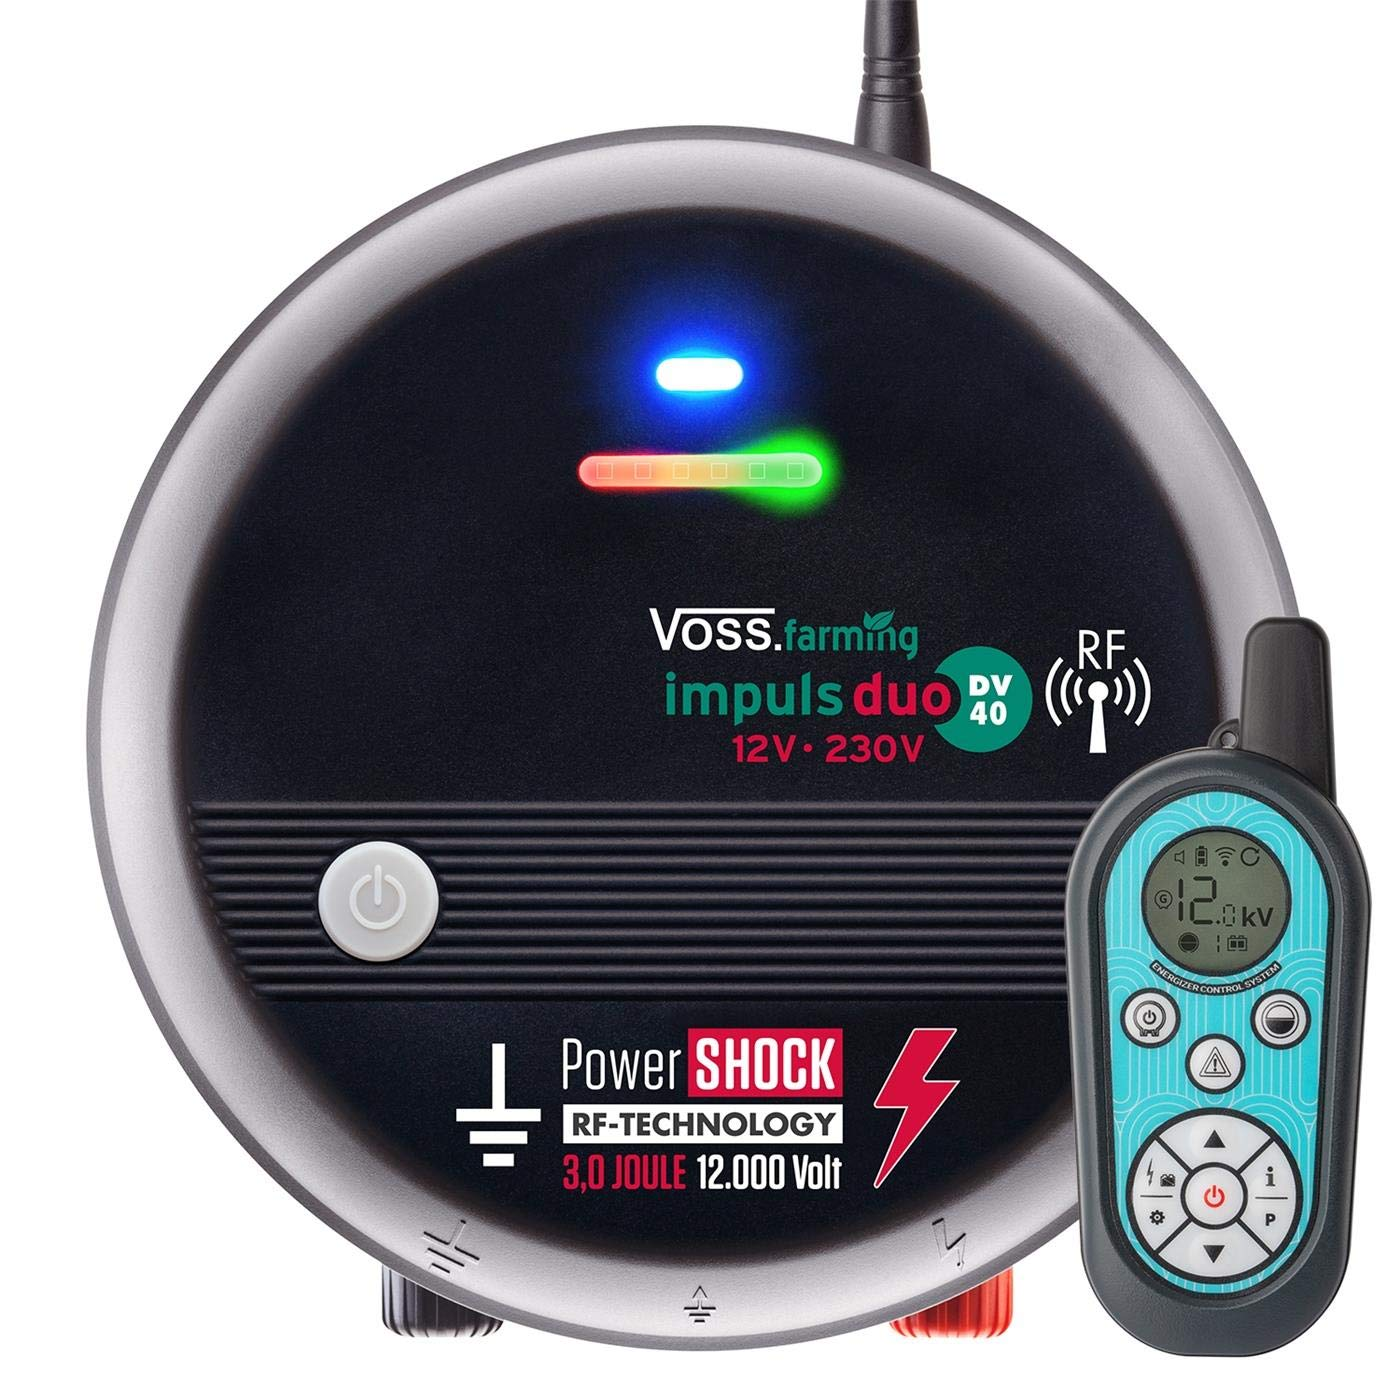 VOSS.farming Electric Fence Energiser DUO DV40 RF   12V Battery Mains Radio Remote Controlled Fencer I 3 J, 12000 V   Range  10 km   Powers up to 9 Nettings   Made in EU